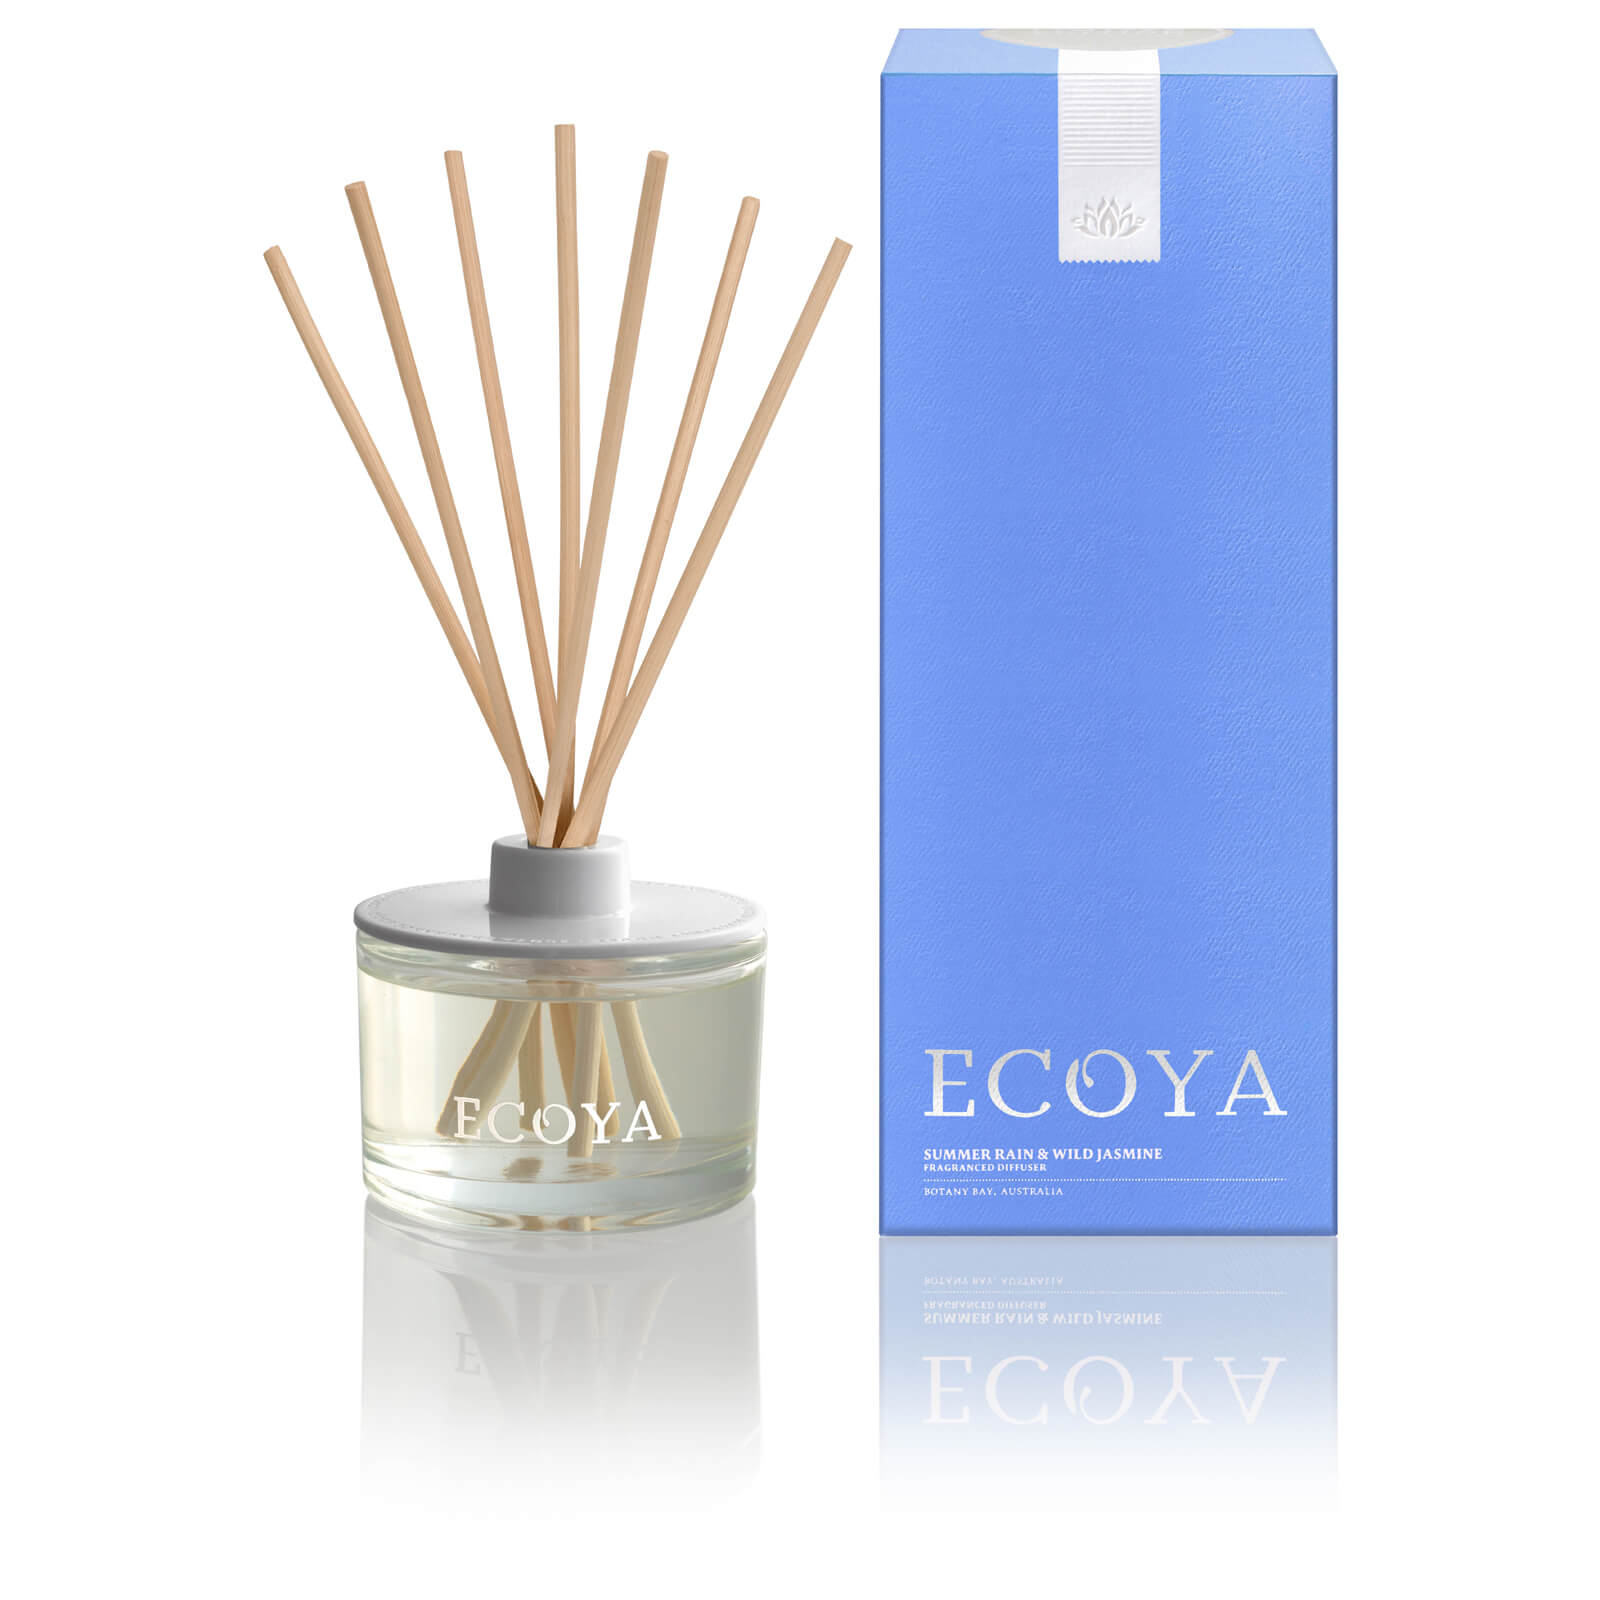 Ecoya Summer Rain And Wild Jasmine Diffuser 200ml Limited Edition